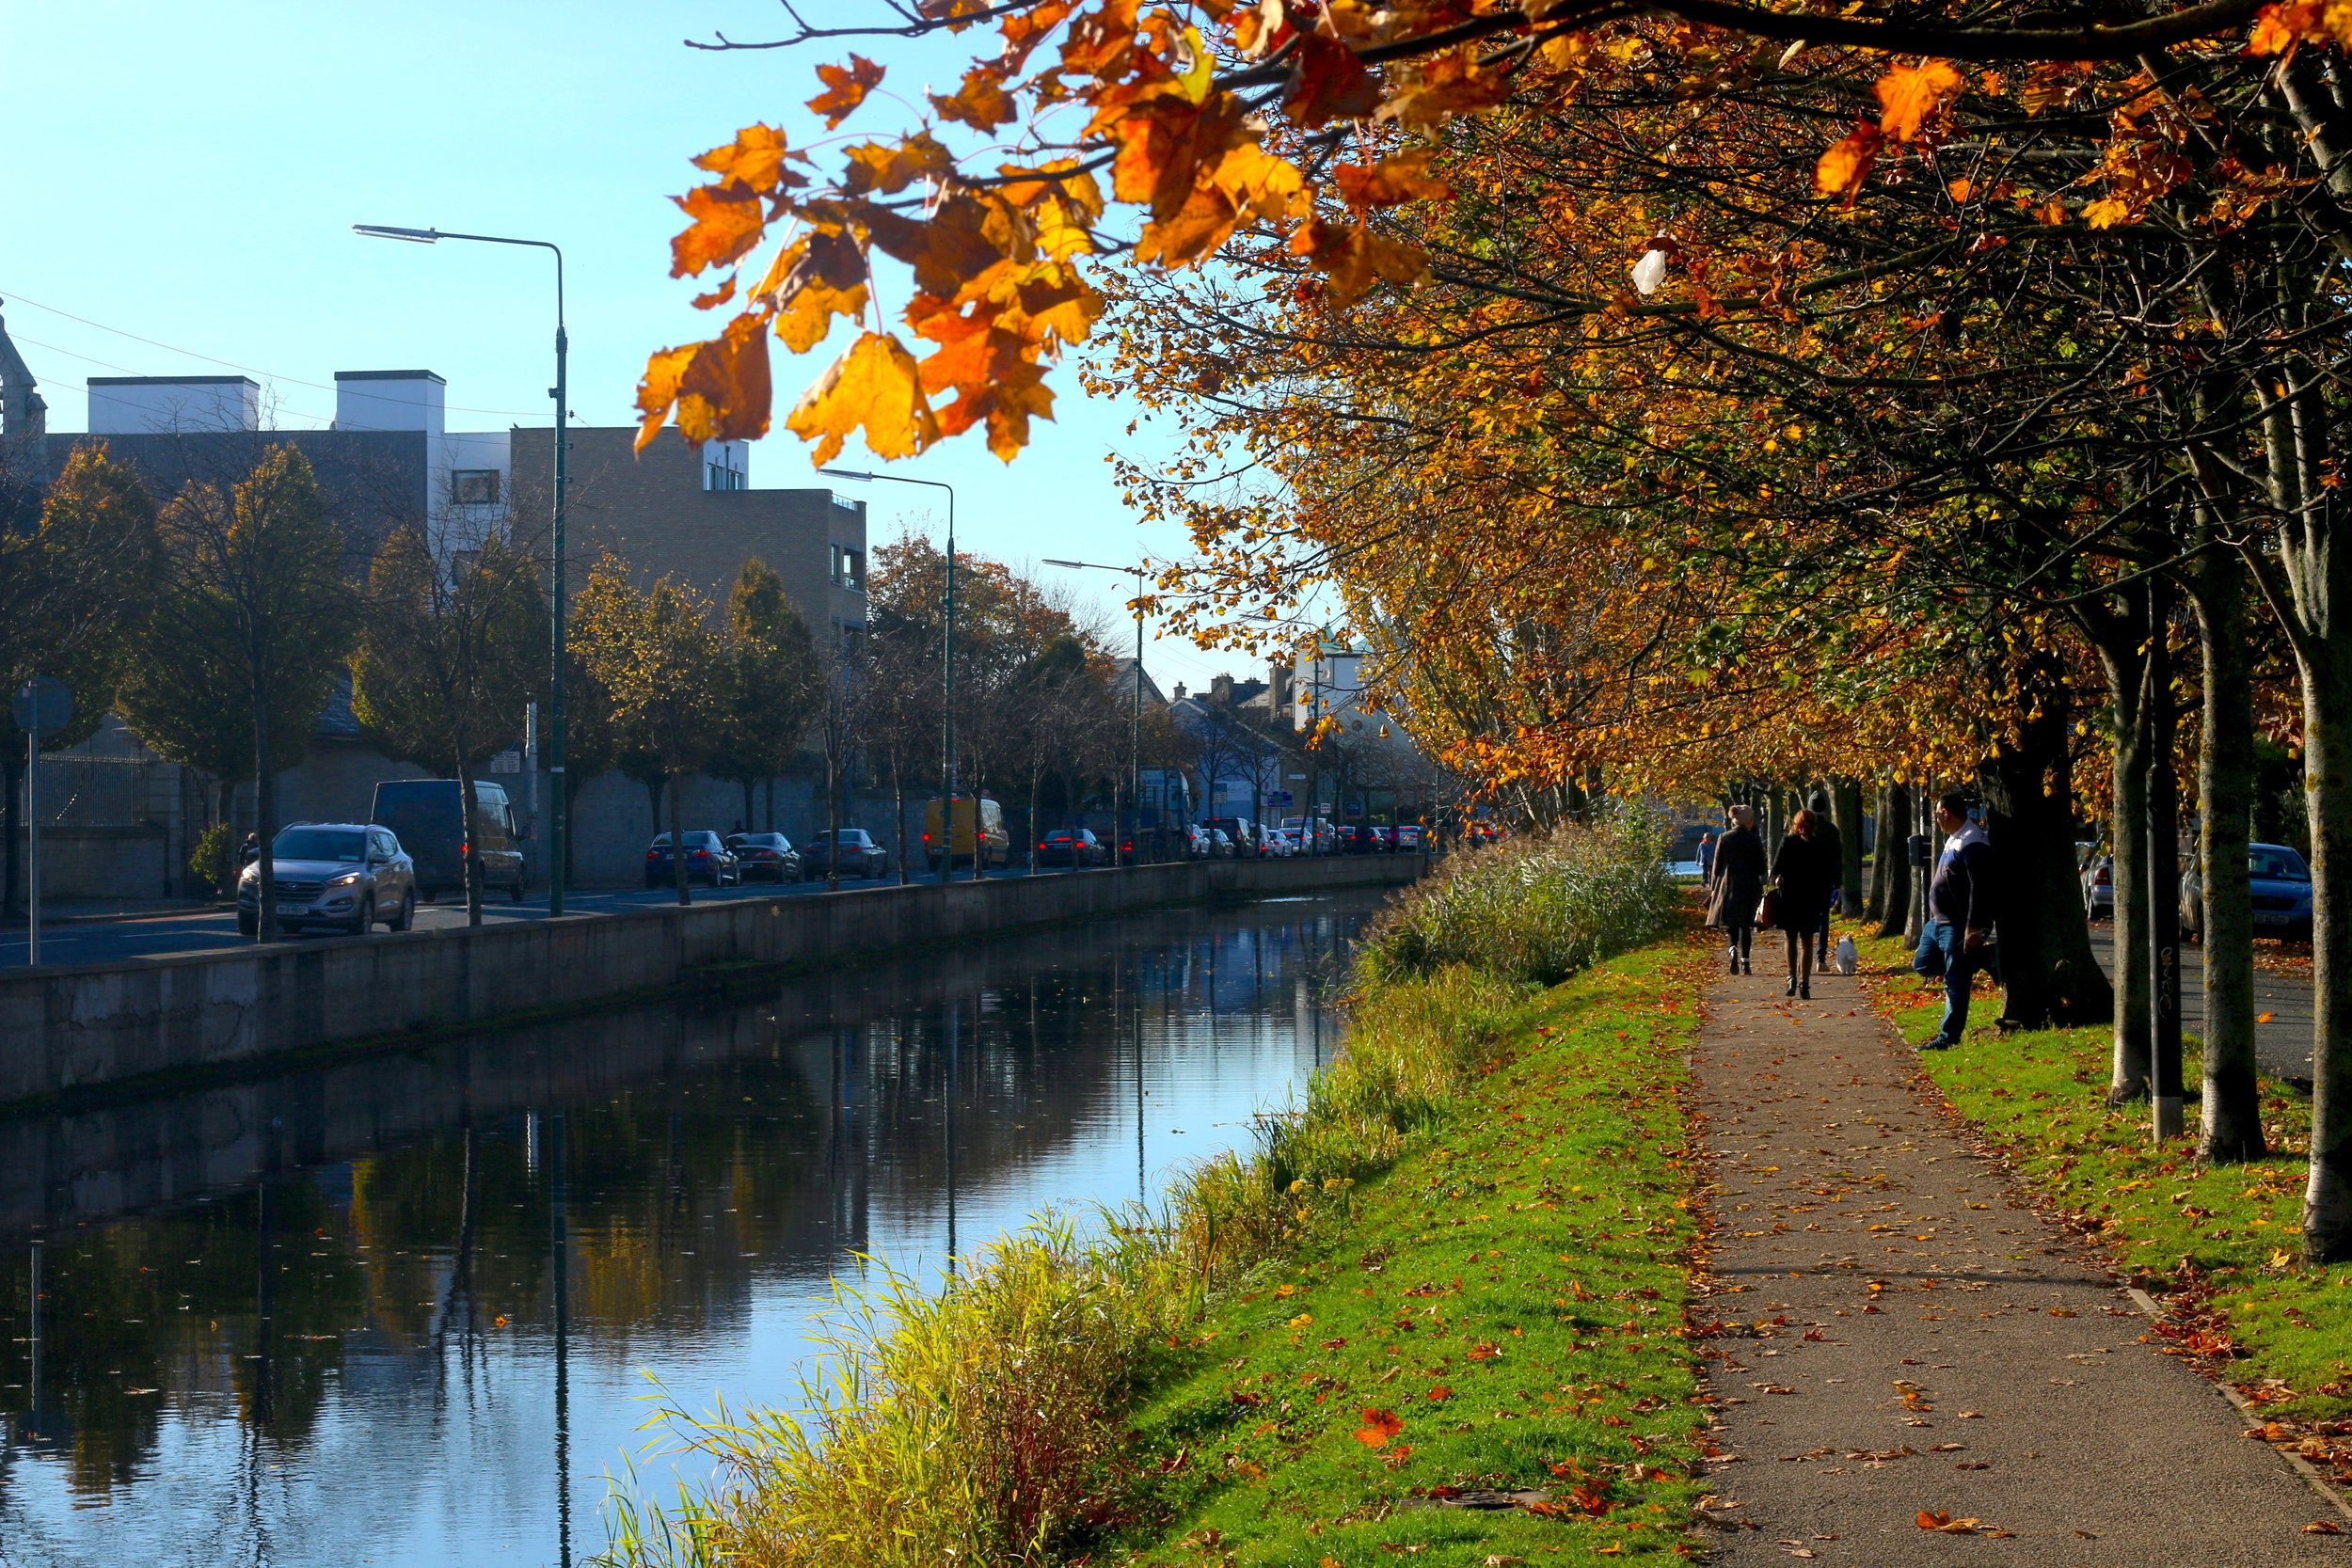 Looking for a break from rehearsals? The canal is only 166 steps away.